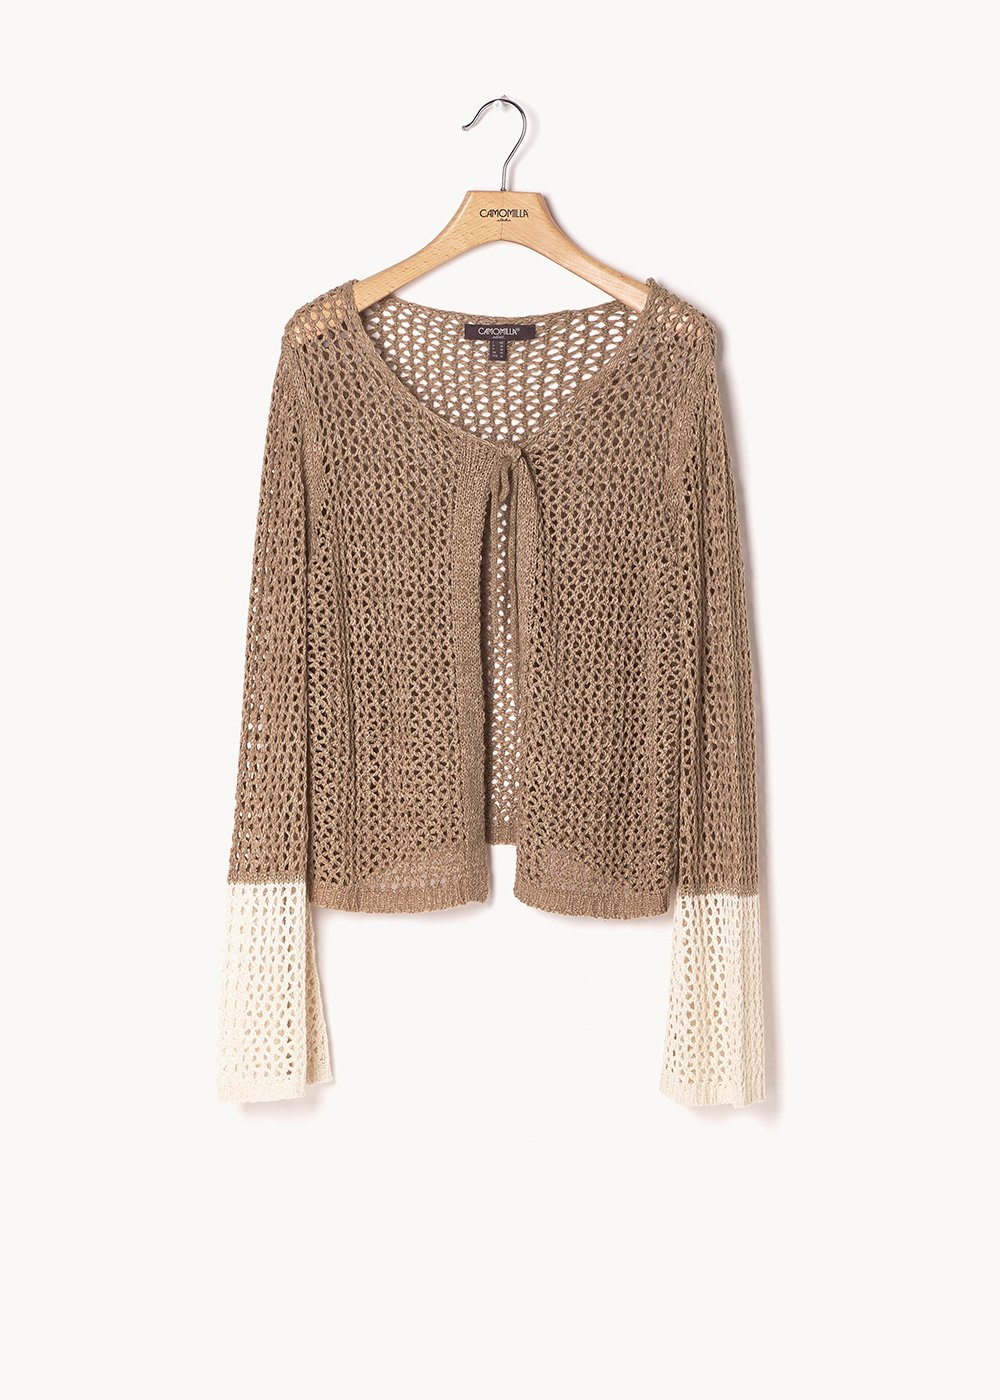 Clayd two-tone shrug with flared sleeve - Desert / L.beige	 - Woman